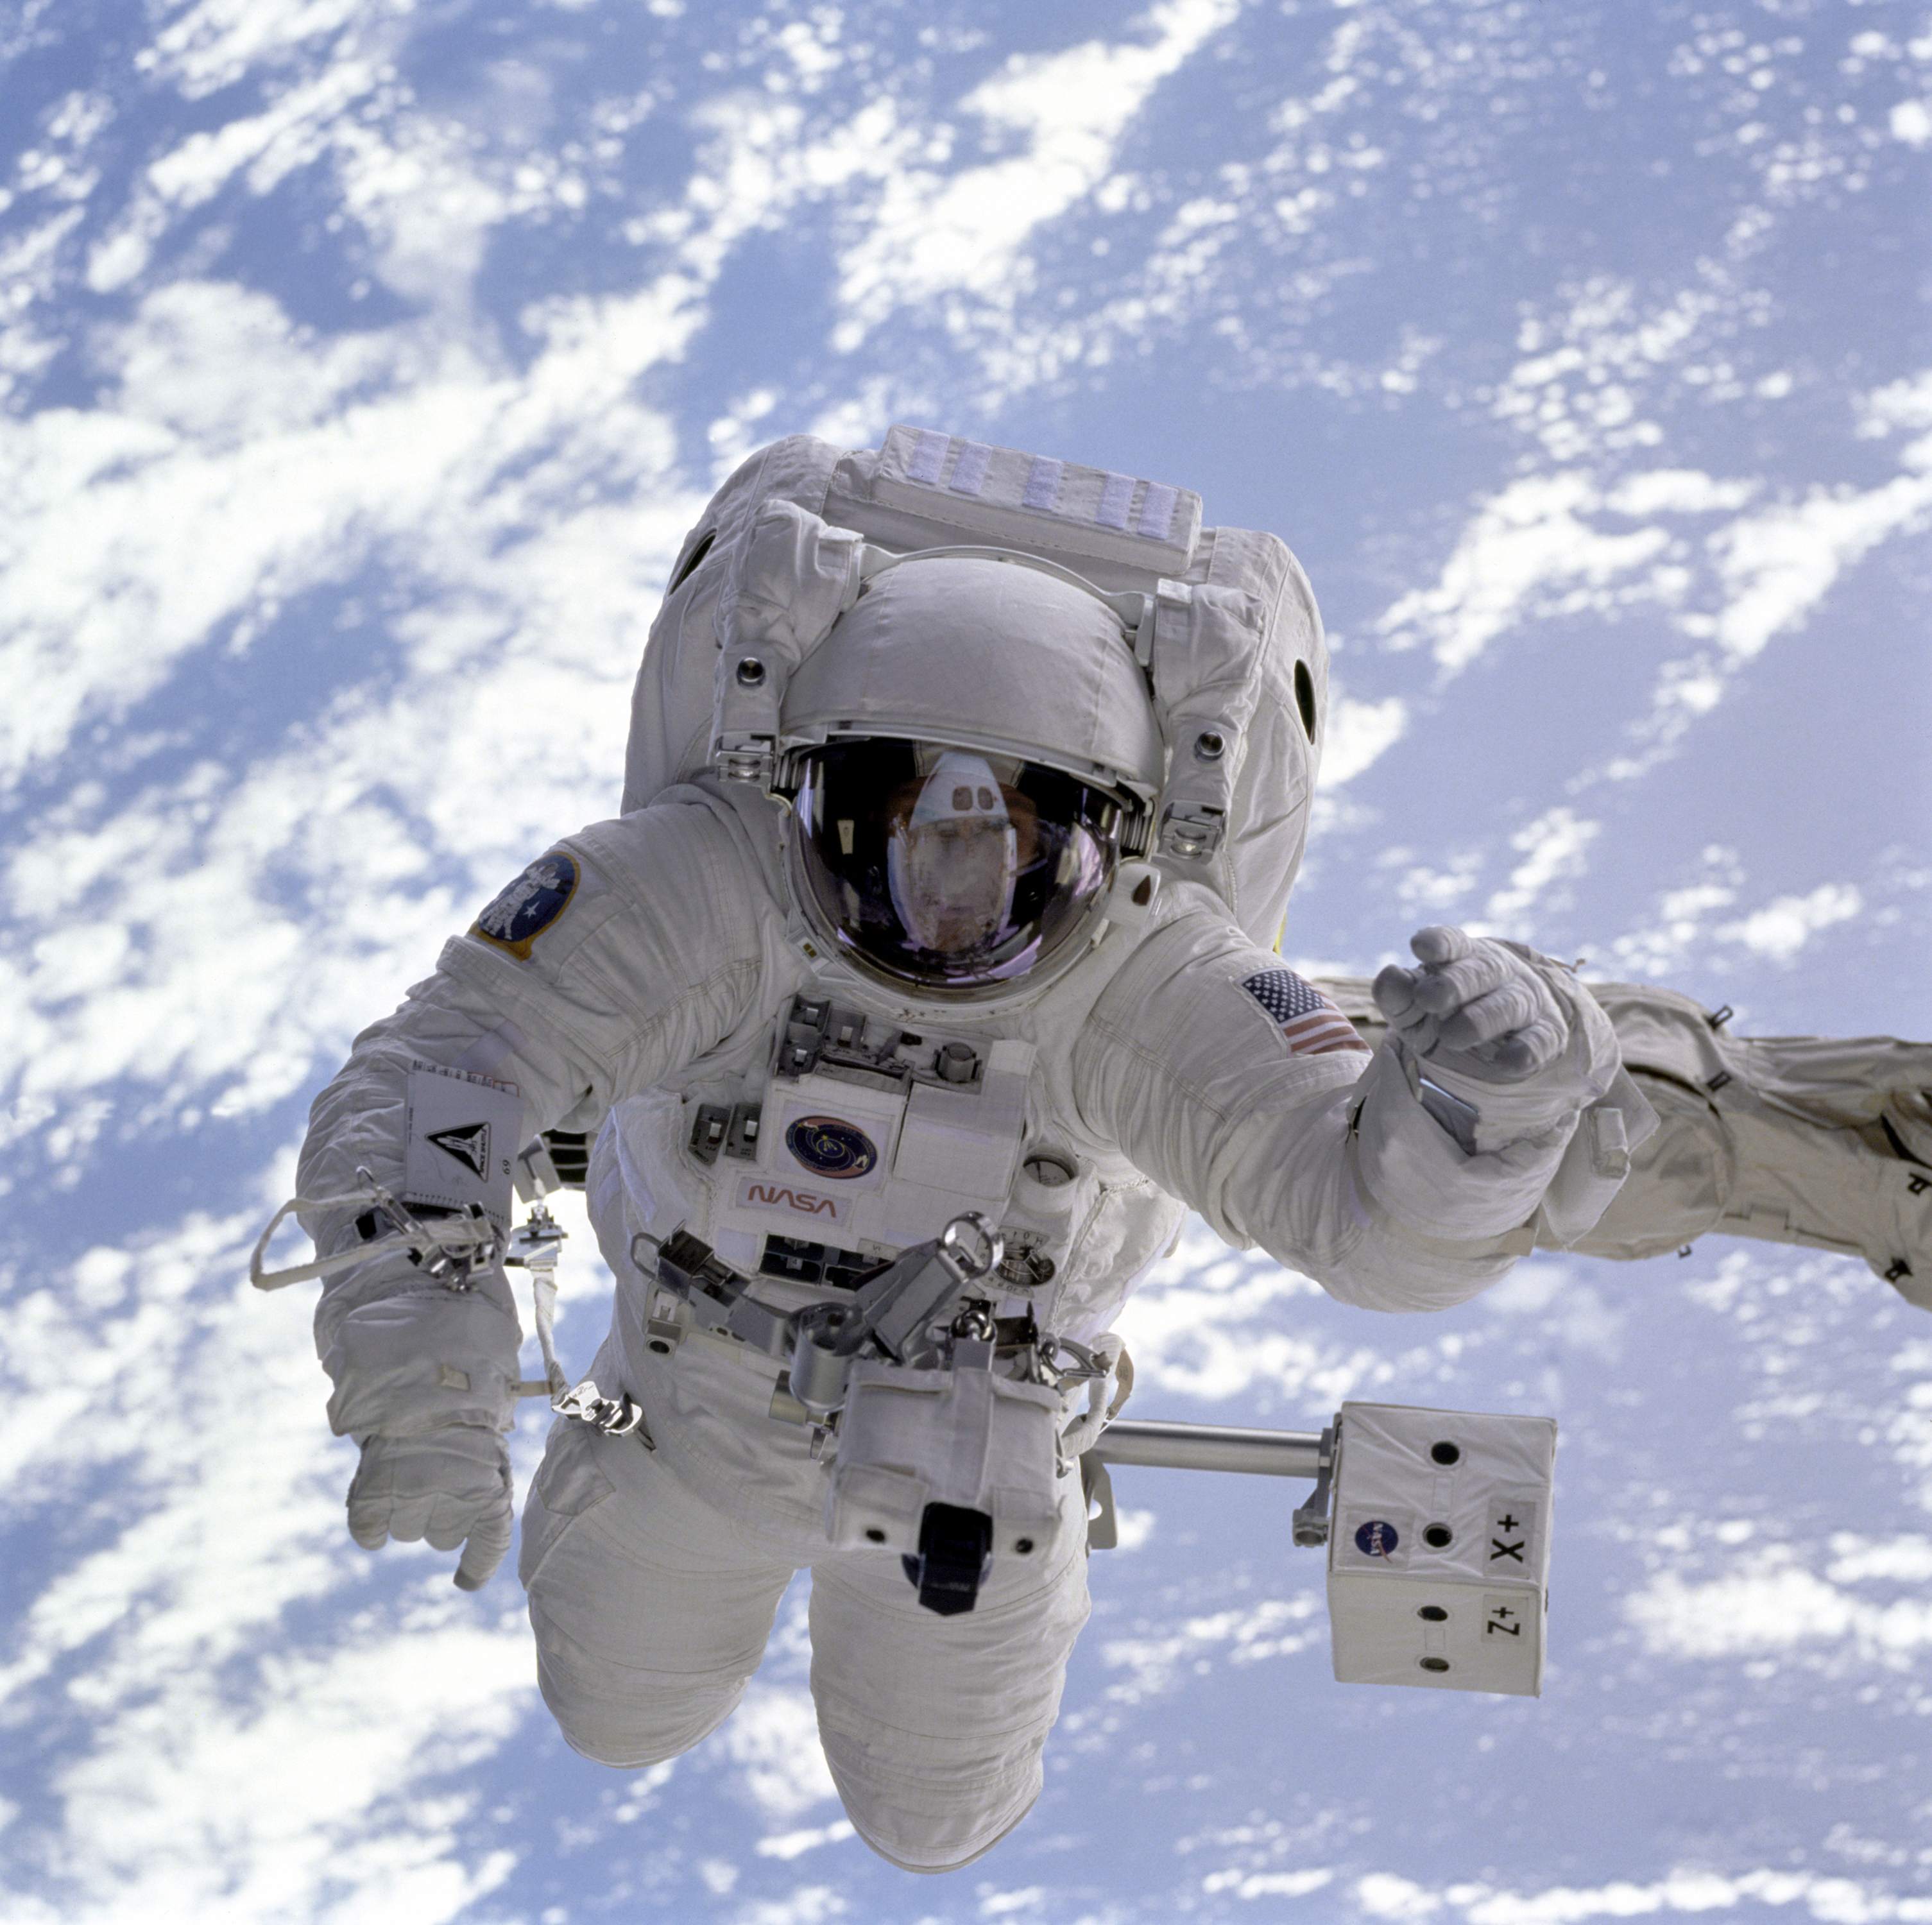 astronaut in space captions - photo #32